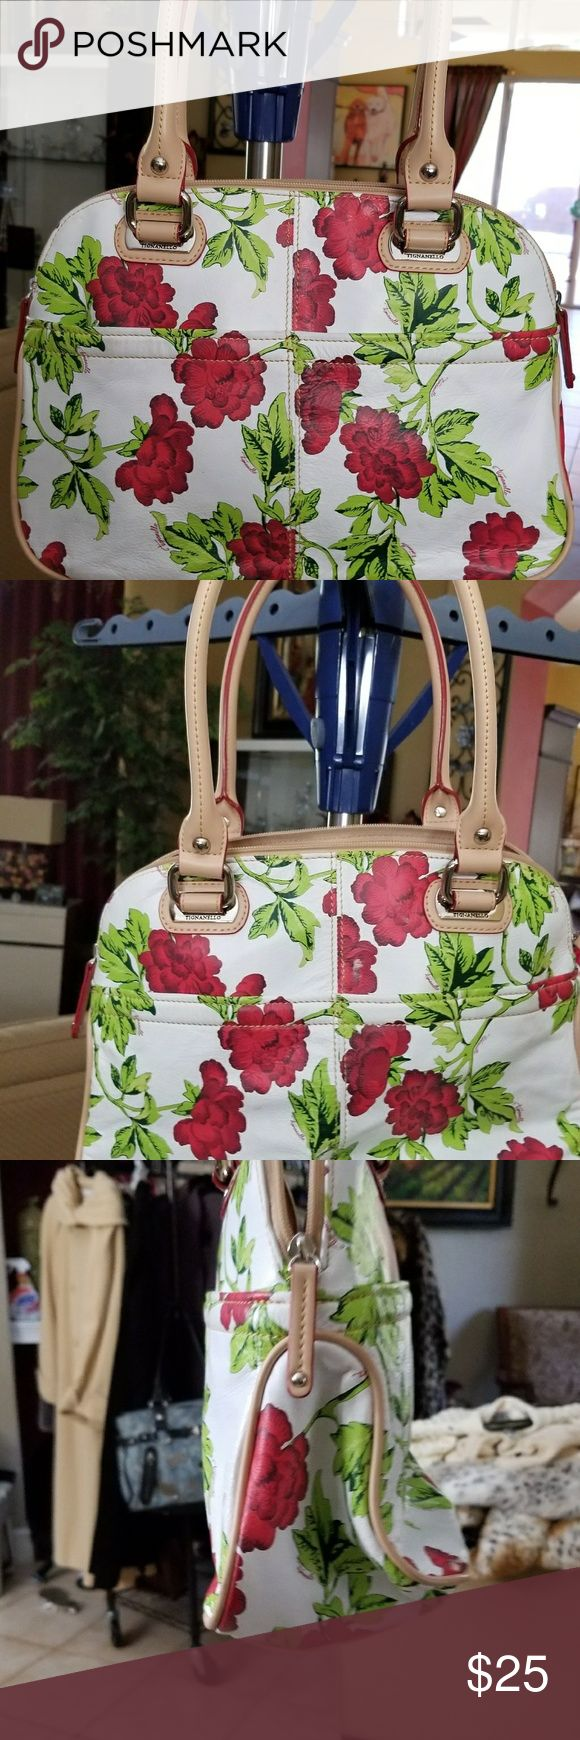 Handbag A nice size tignanello handbag with a floral print. Never used Tianello Bags Shoulder Bags